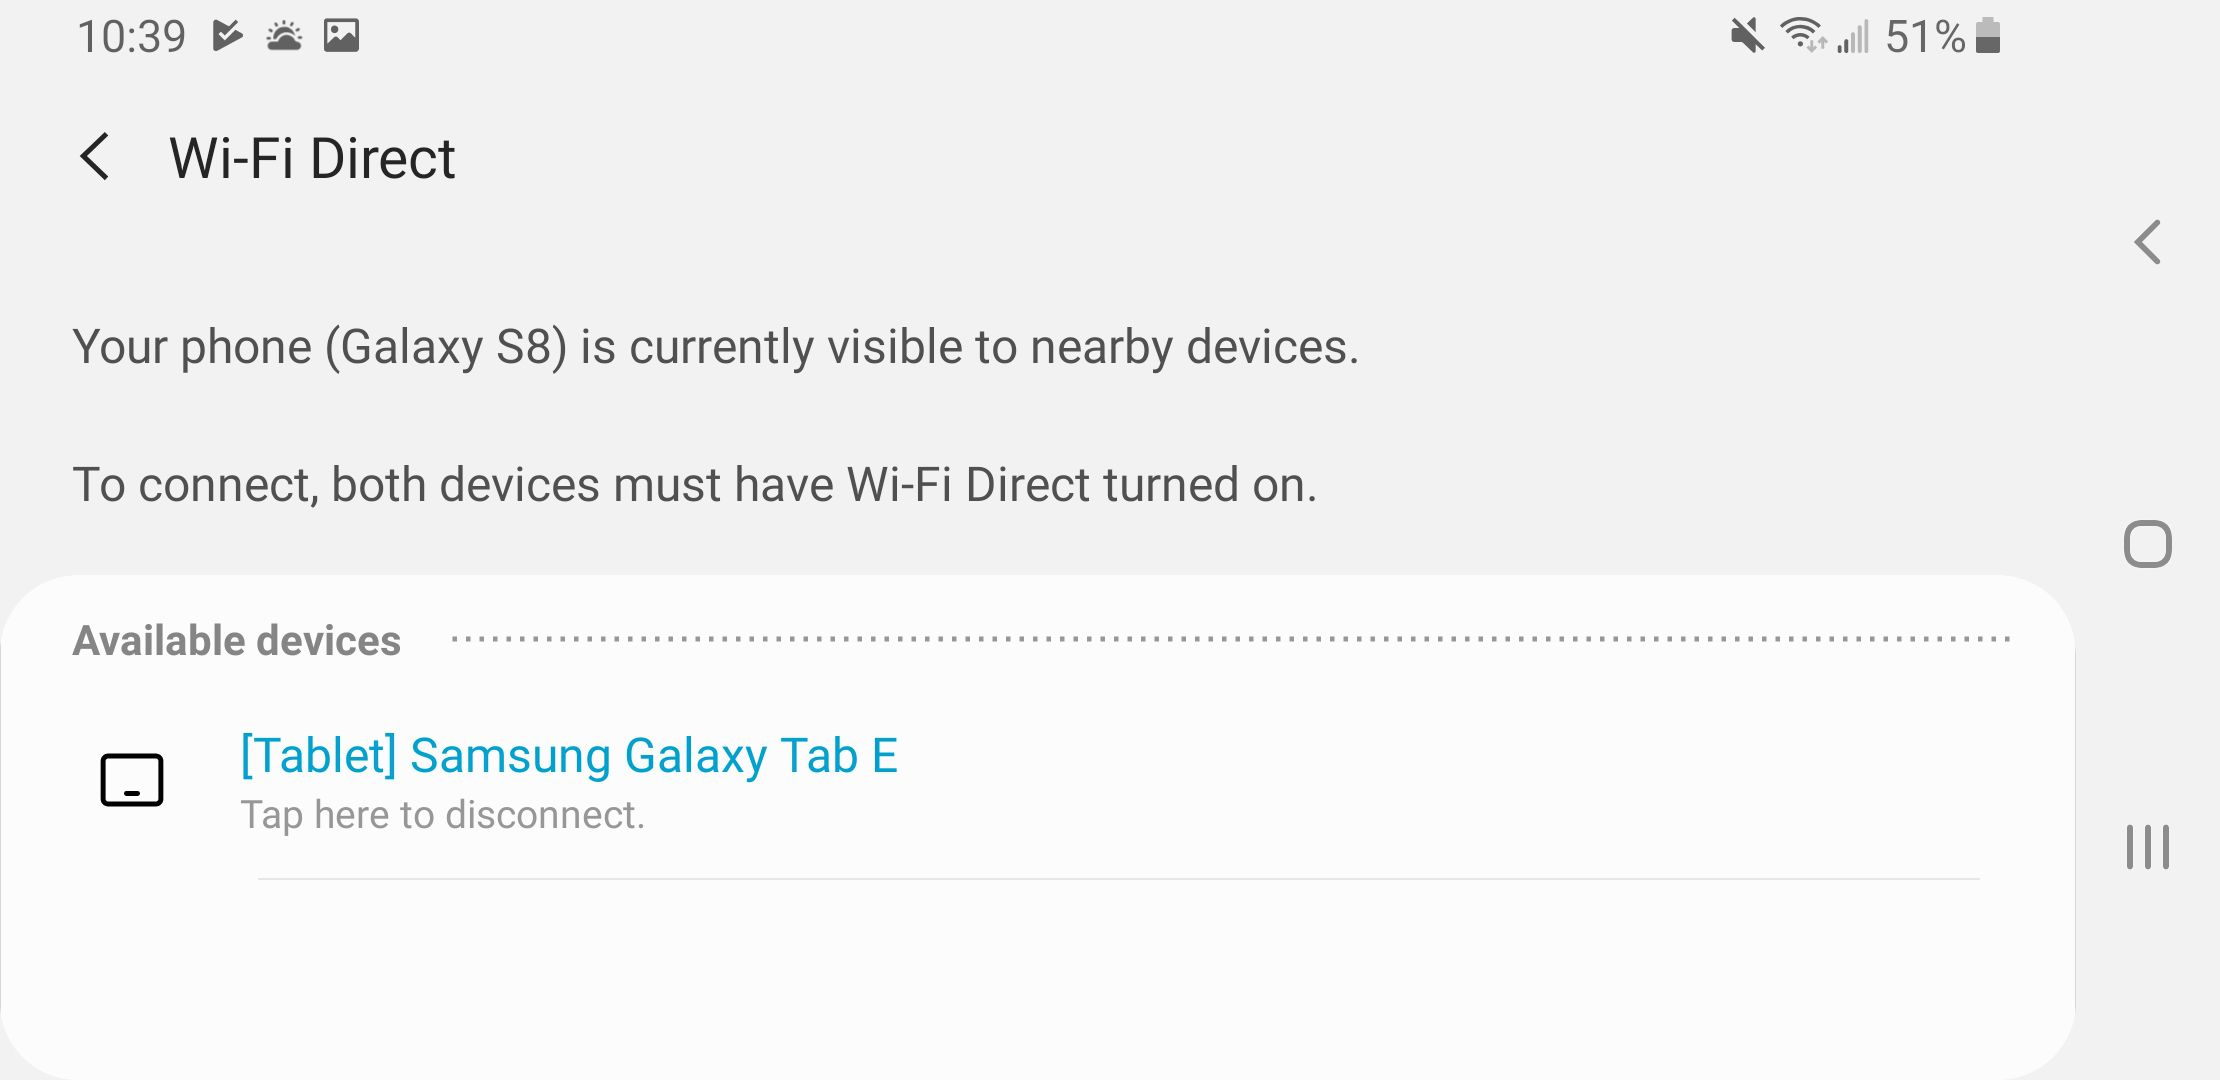 How to Use Wi-Fi Direct